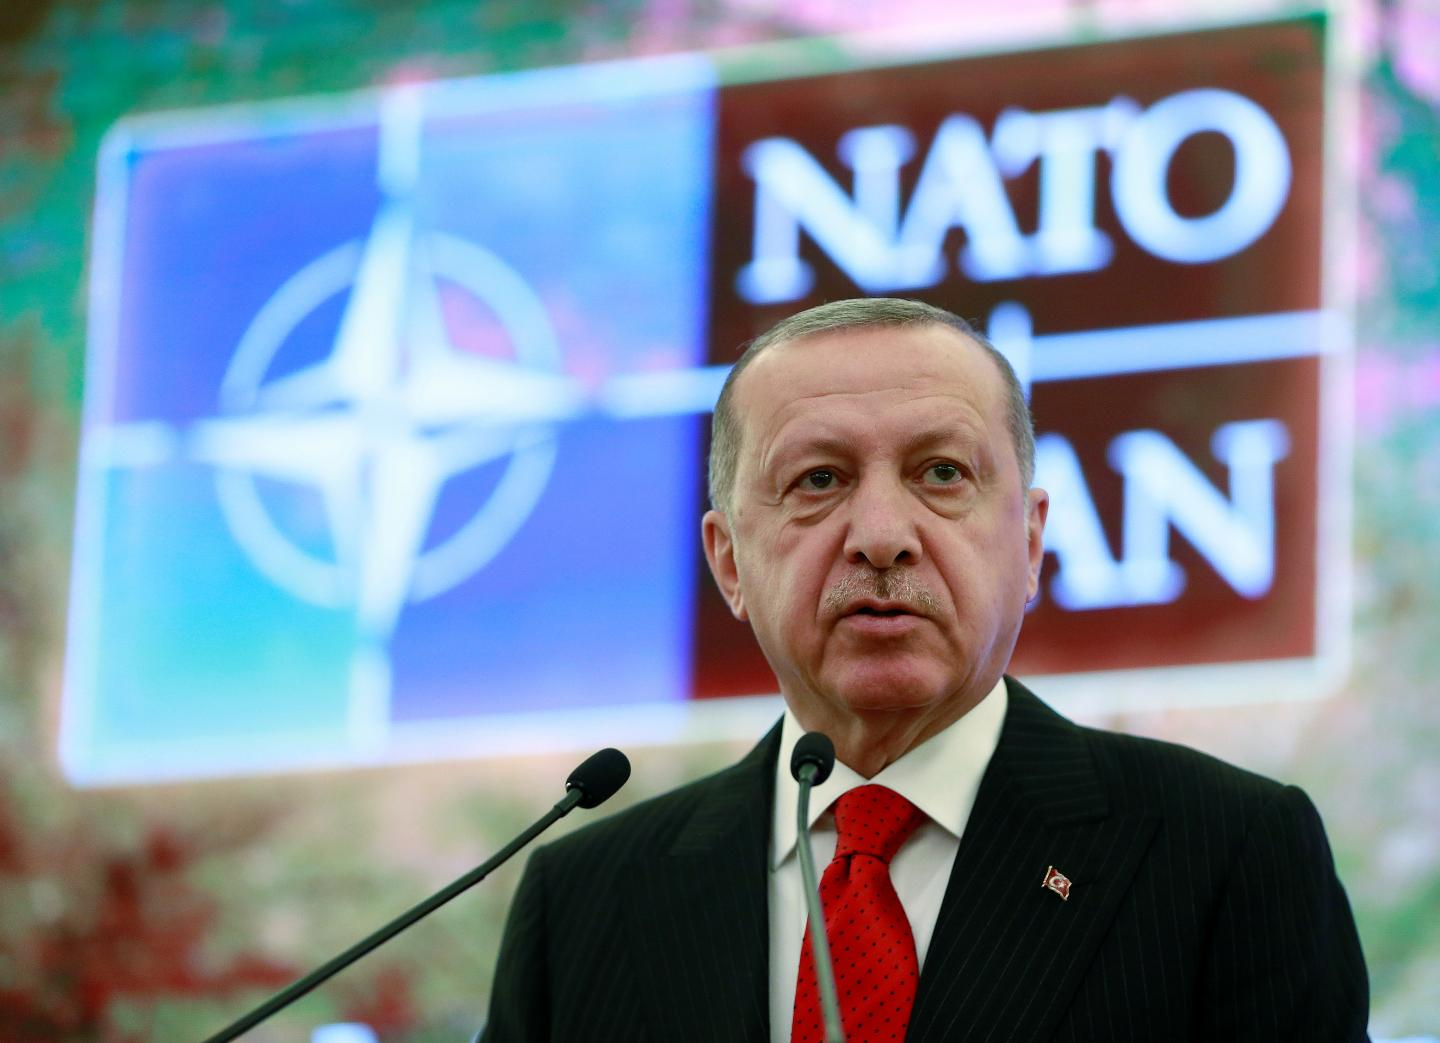 Could NATO expel Turkey? 8